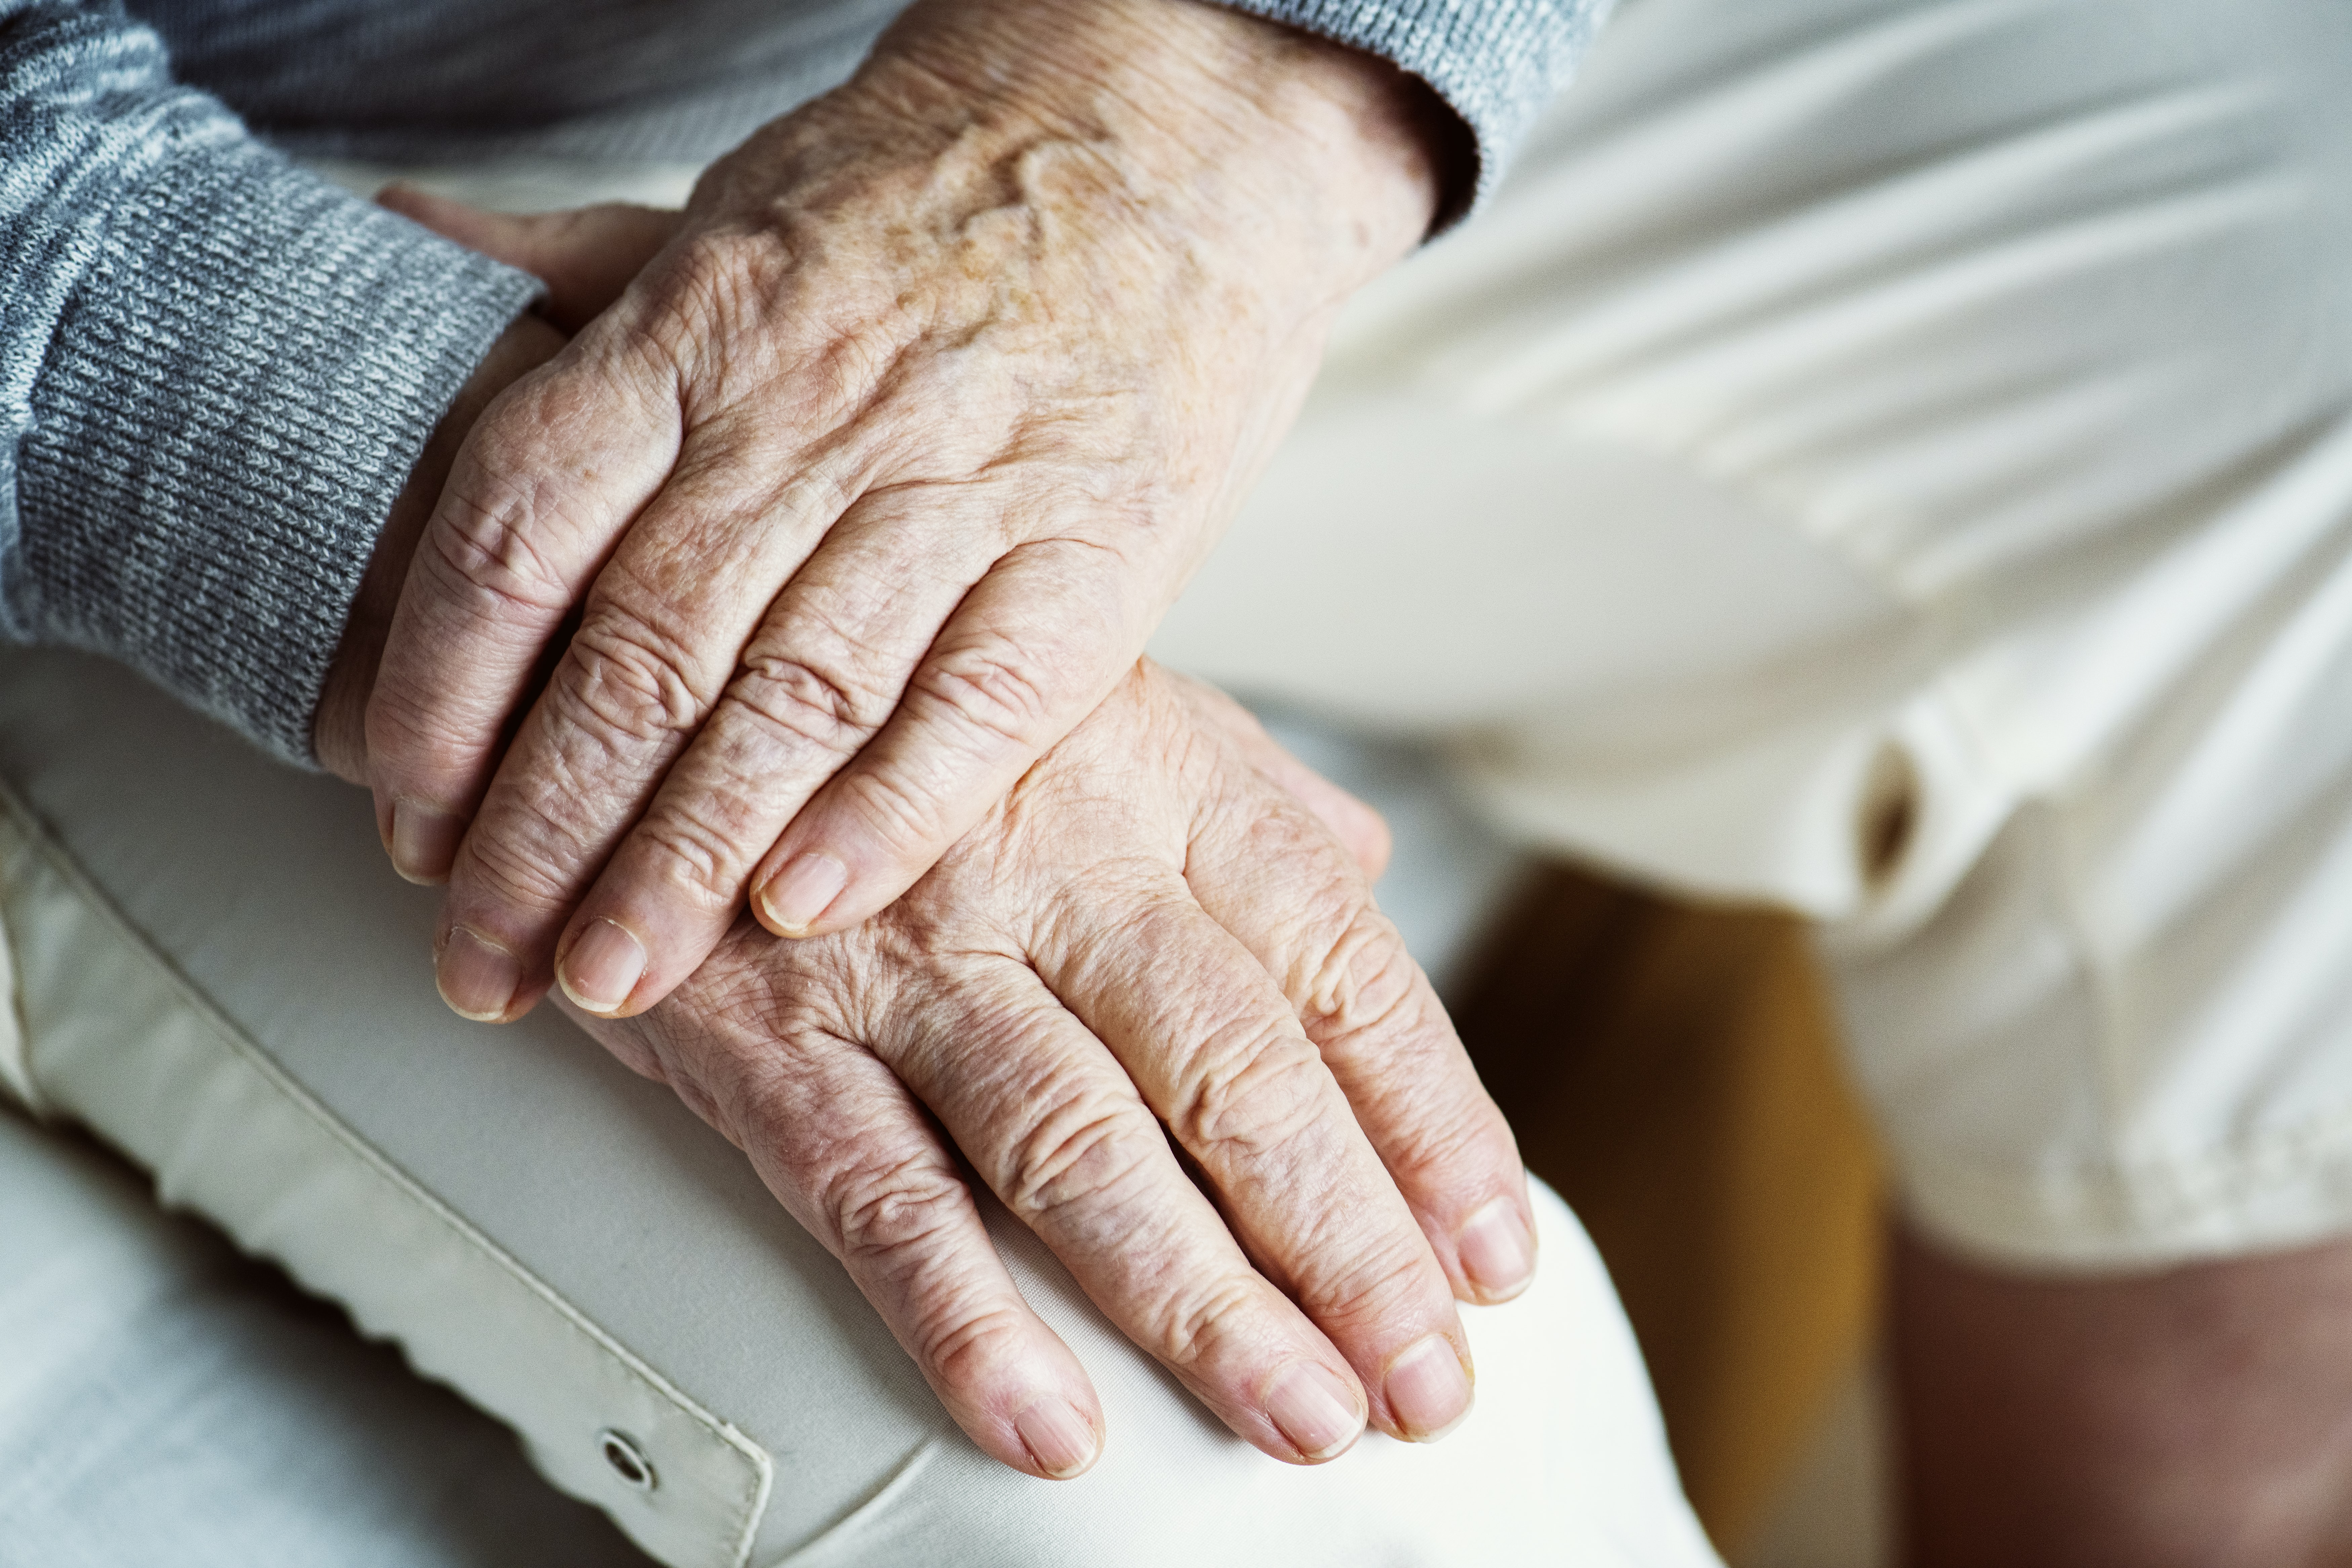 person's hands on lap